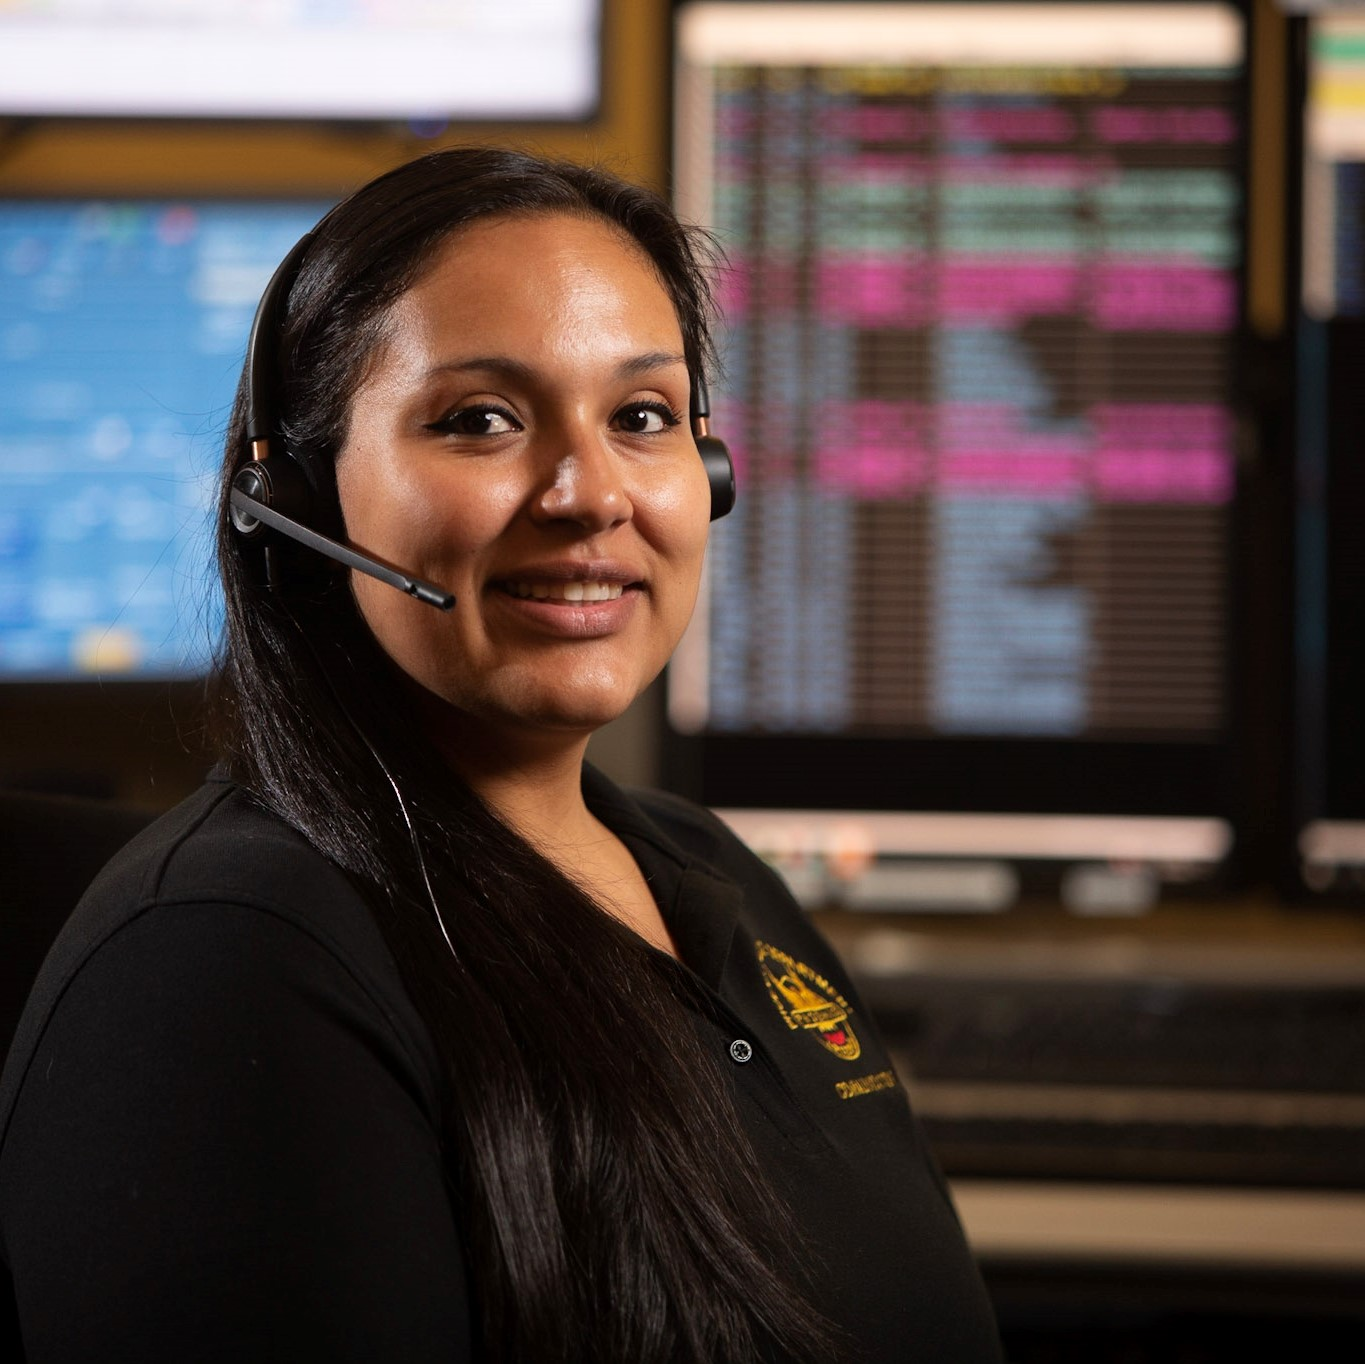 female dispatcher